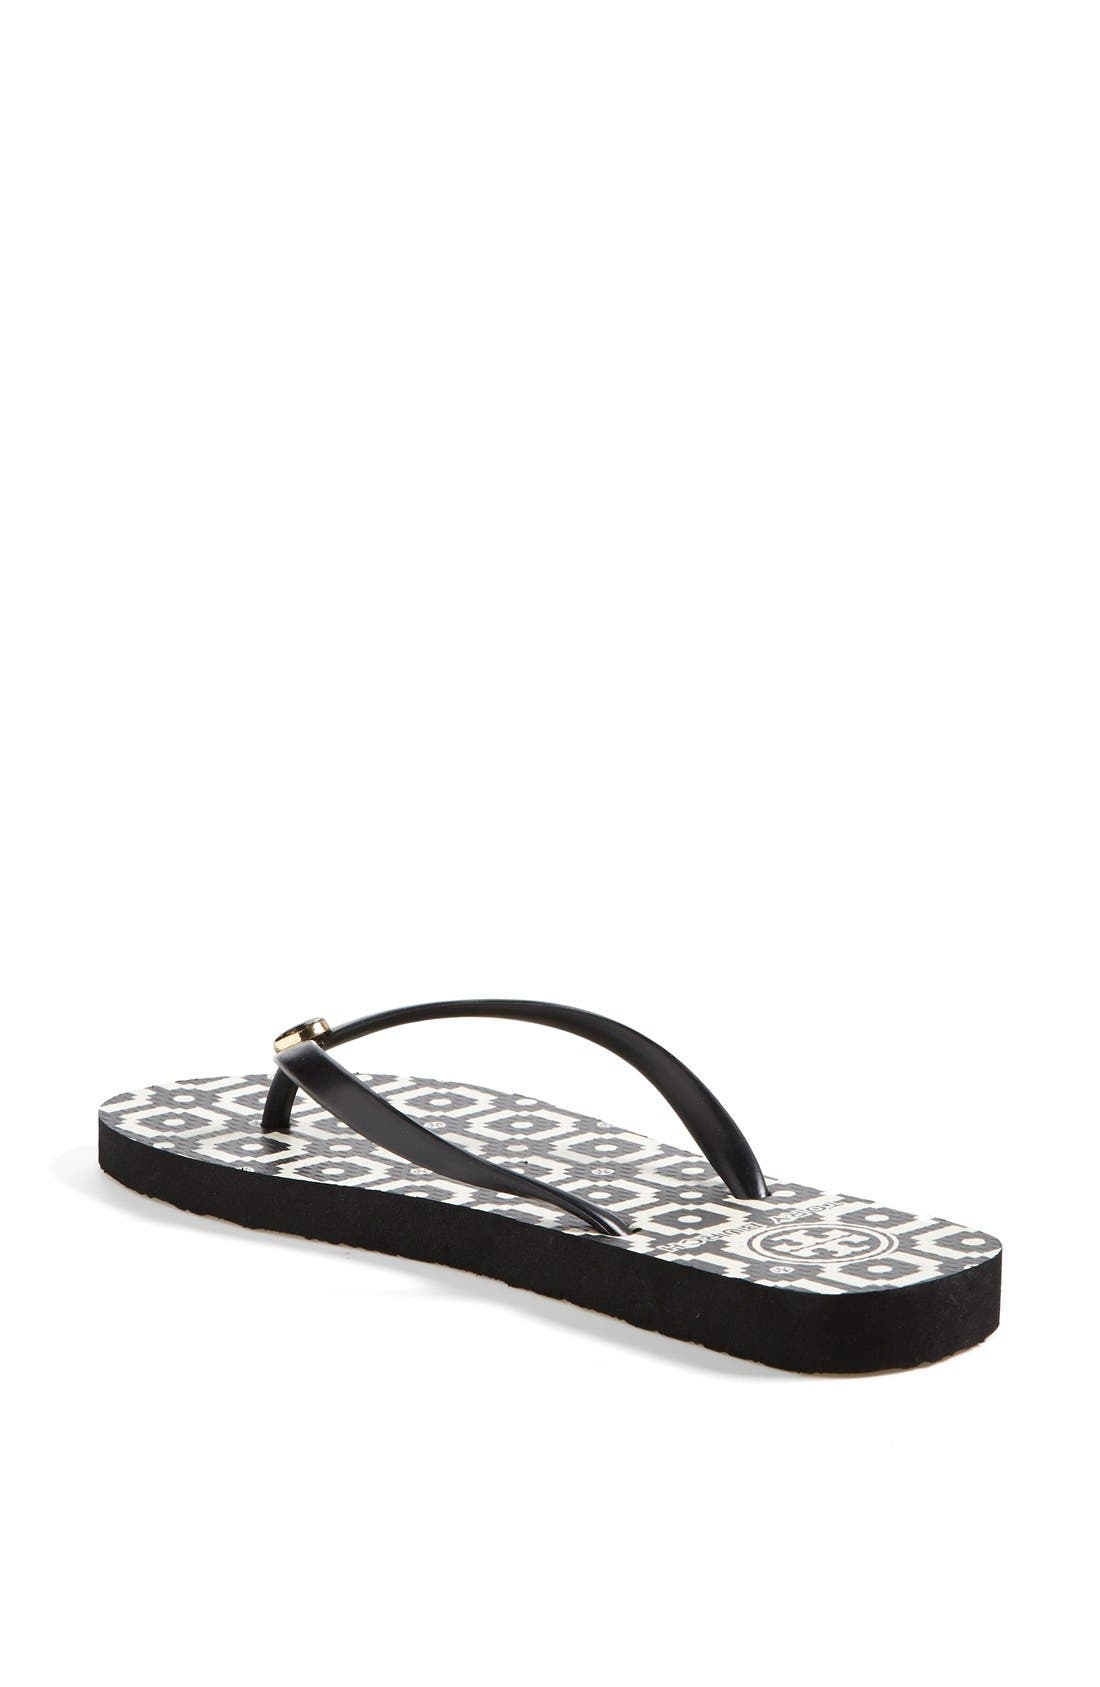 Alternate Image 3  - Tory Burch Print Flip Flop